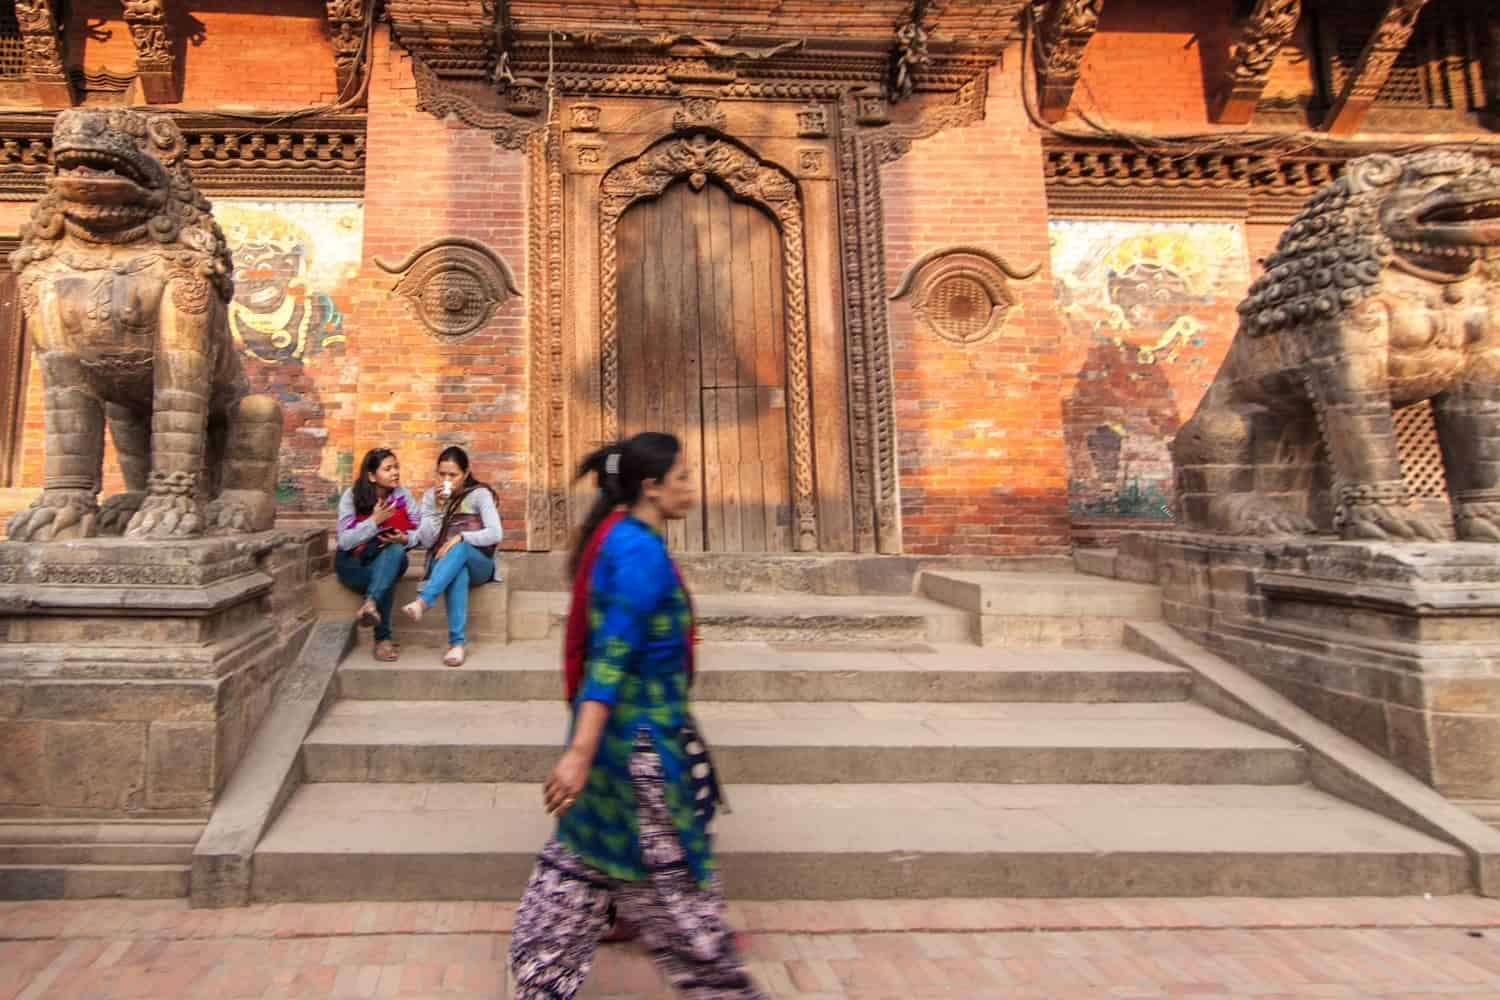 Society is changing for women in Nepal, who now have growing opportunities in the home and in the workforce.